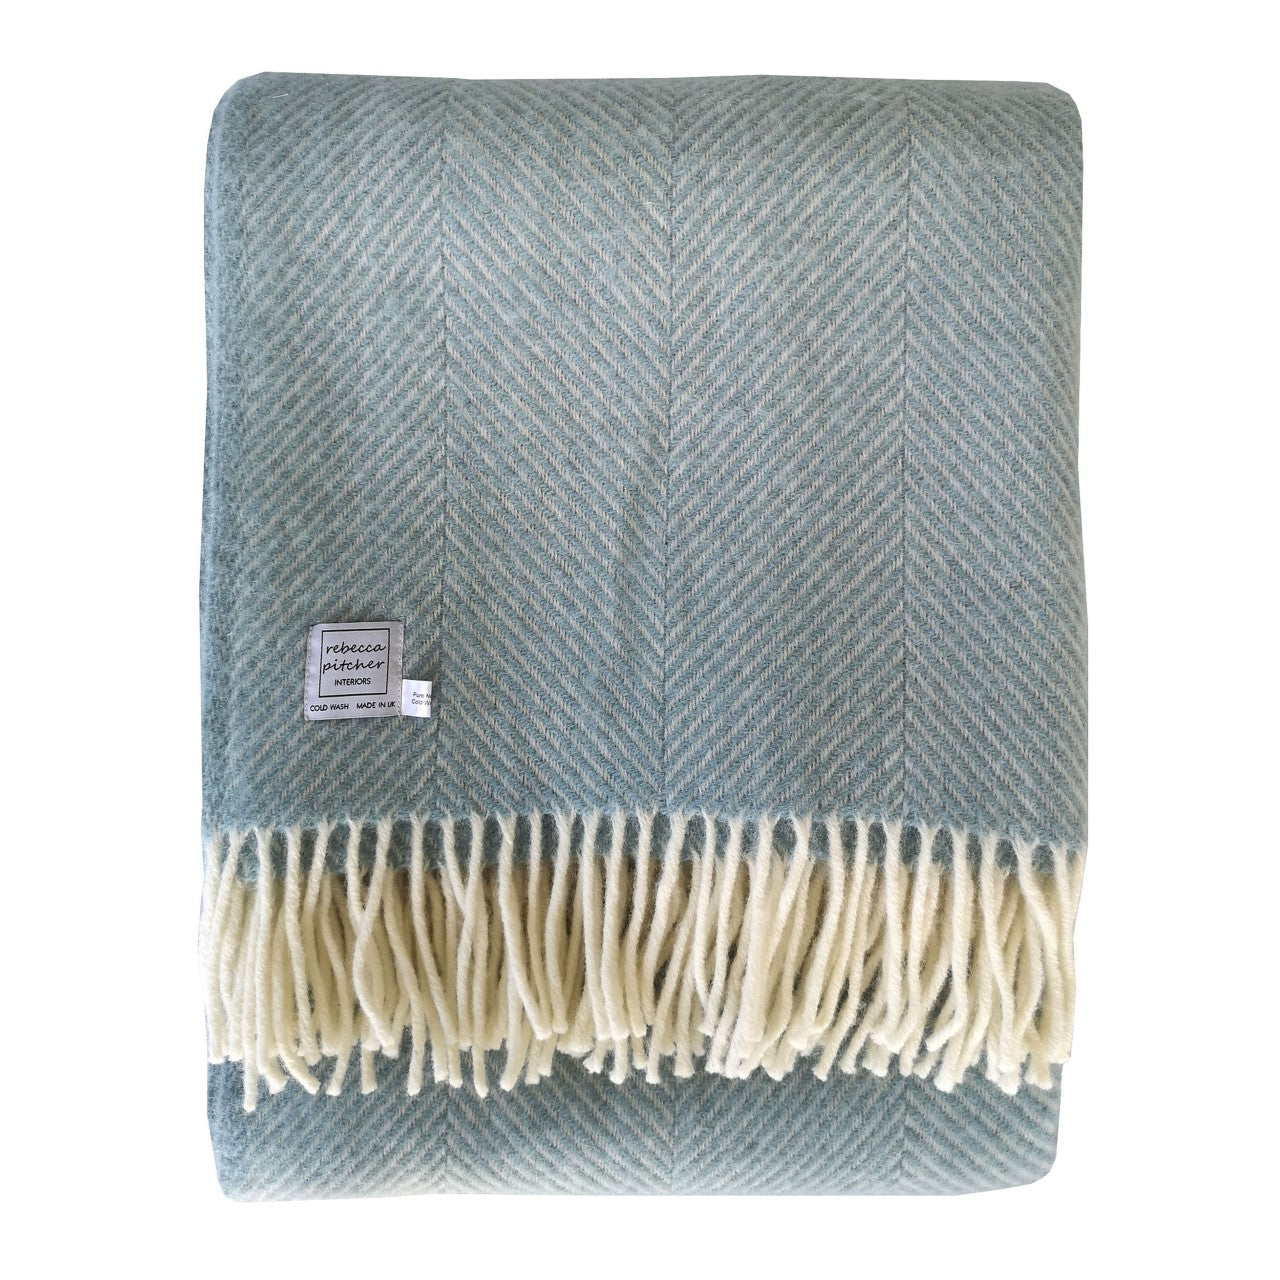 Rebecca Pitcher Large Duck Egg Blue Wool Throw